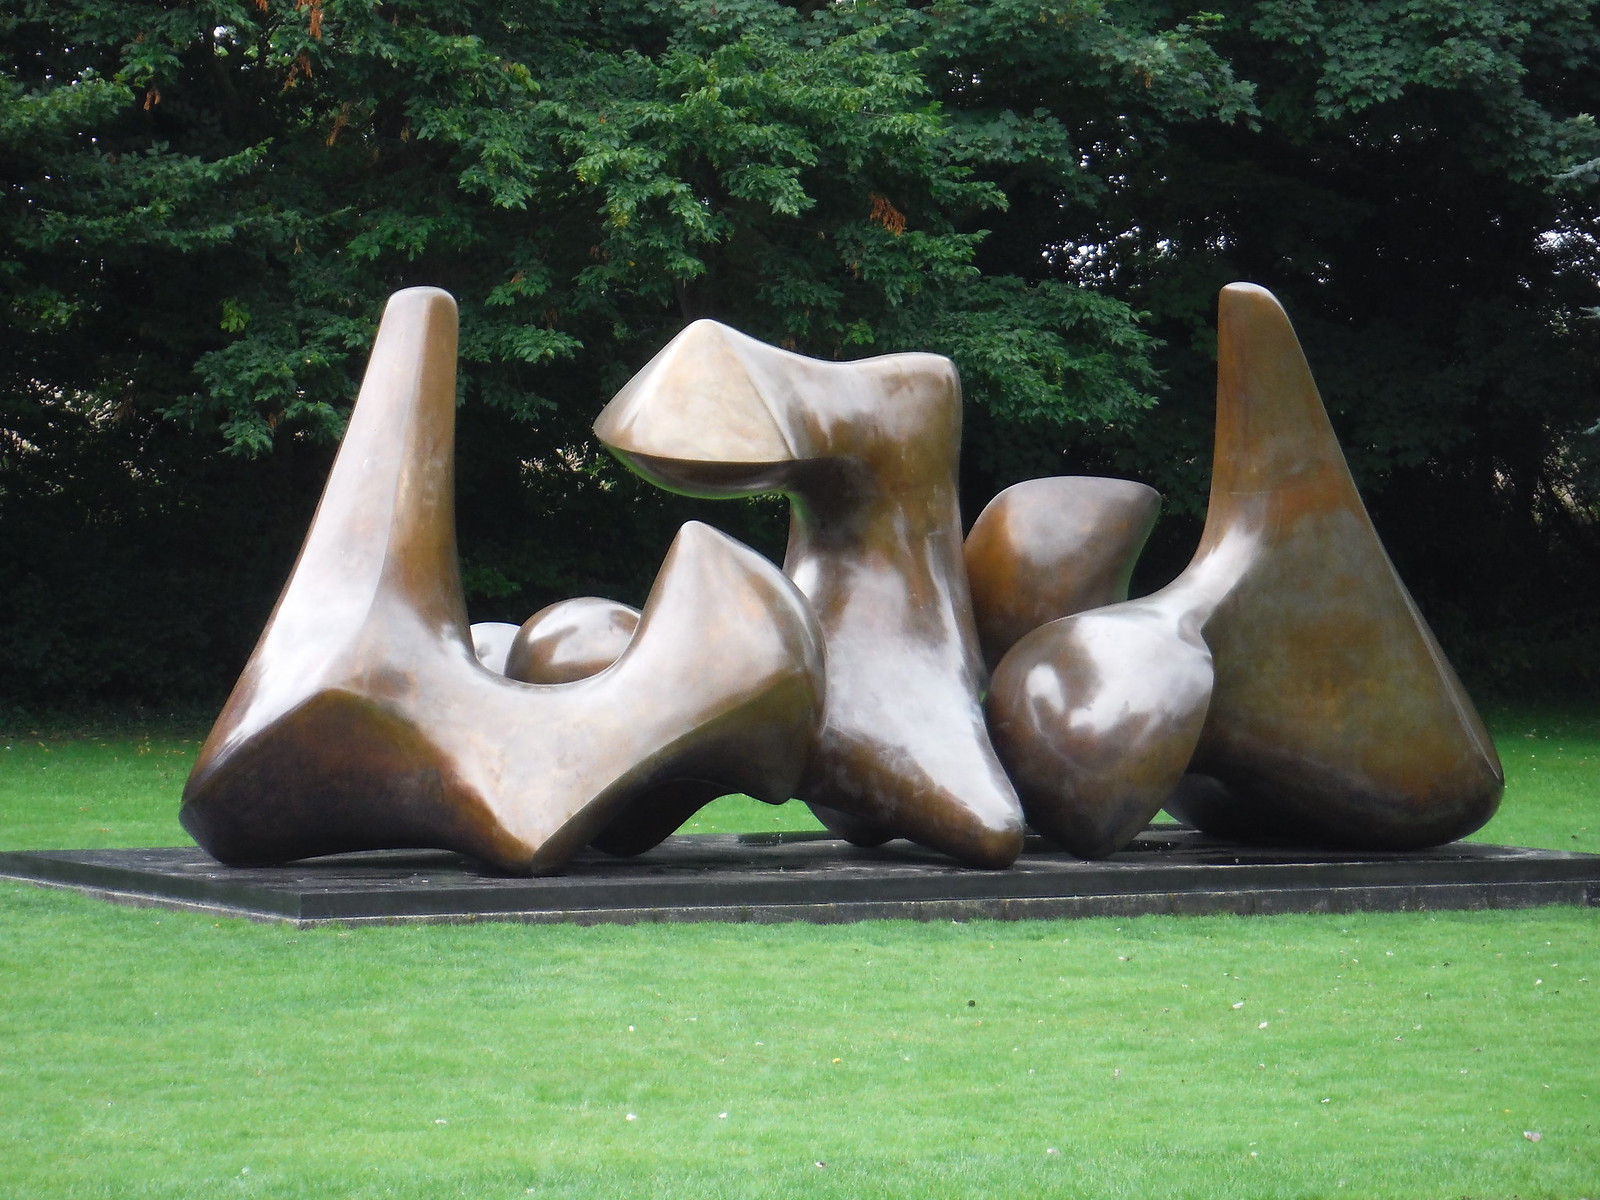 Three Piece Sculpture: Vertebrae (1968) SWC Walk 164 Roydon to Sawbridgeworth via Henry Moore Foundation